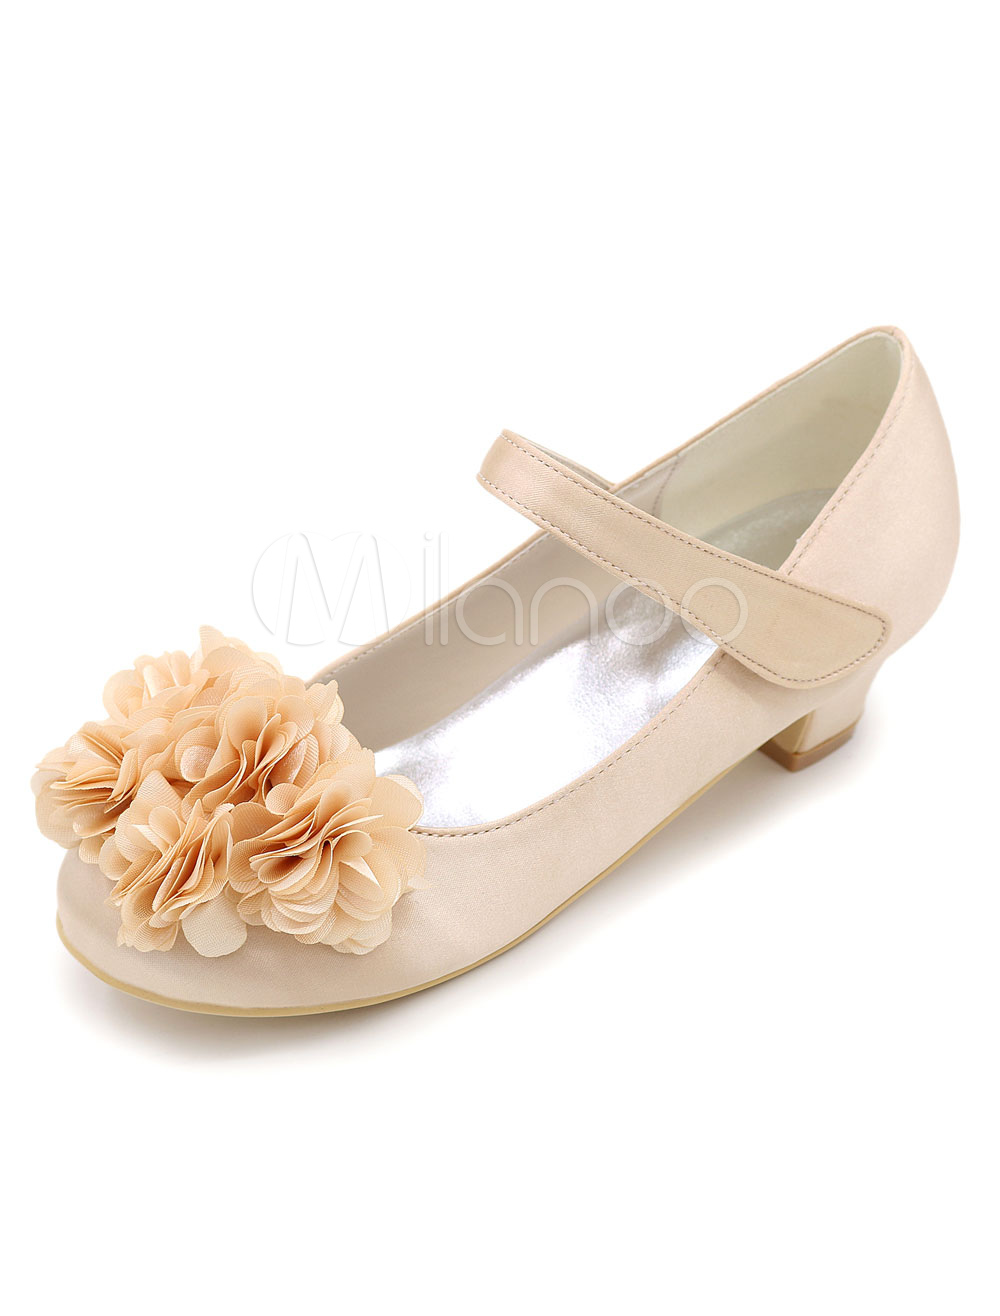 Satin Flower Girl Pumps Shoes Sweet Flower Champagne Wedding Shoes For Kids